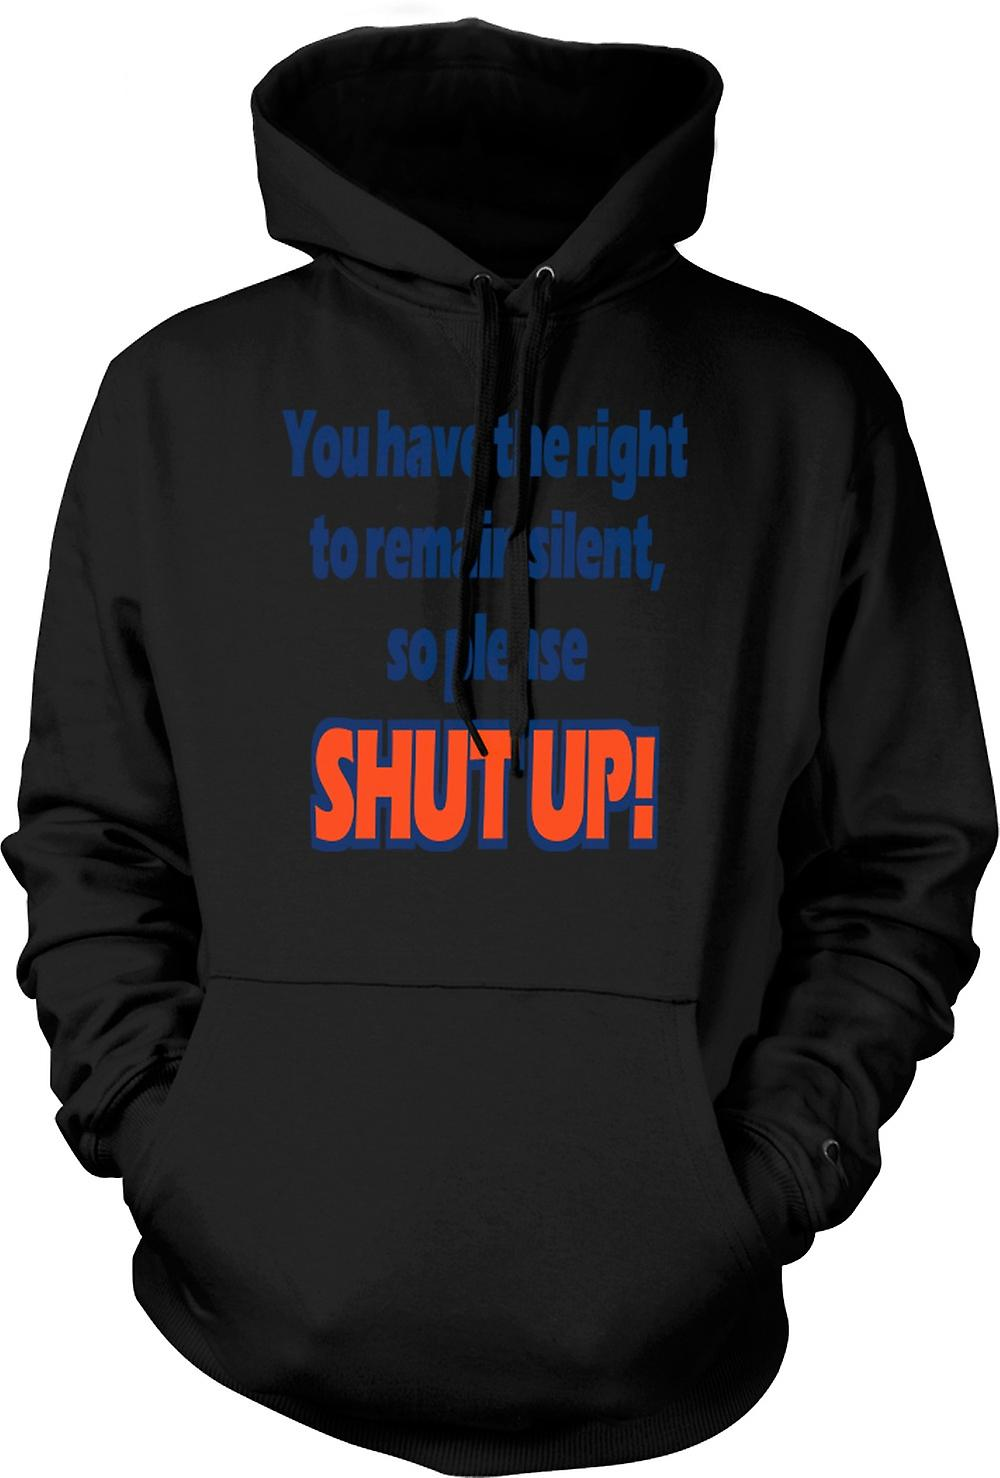 Mens Hoodie - You have the right to remain silent, so please SHUT UP!